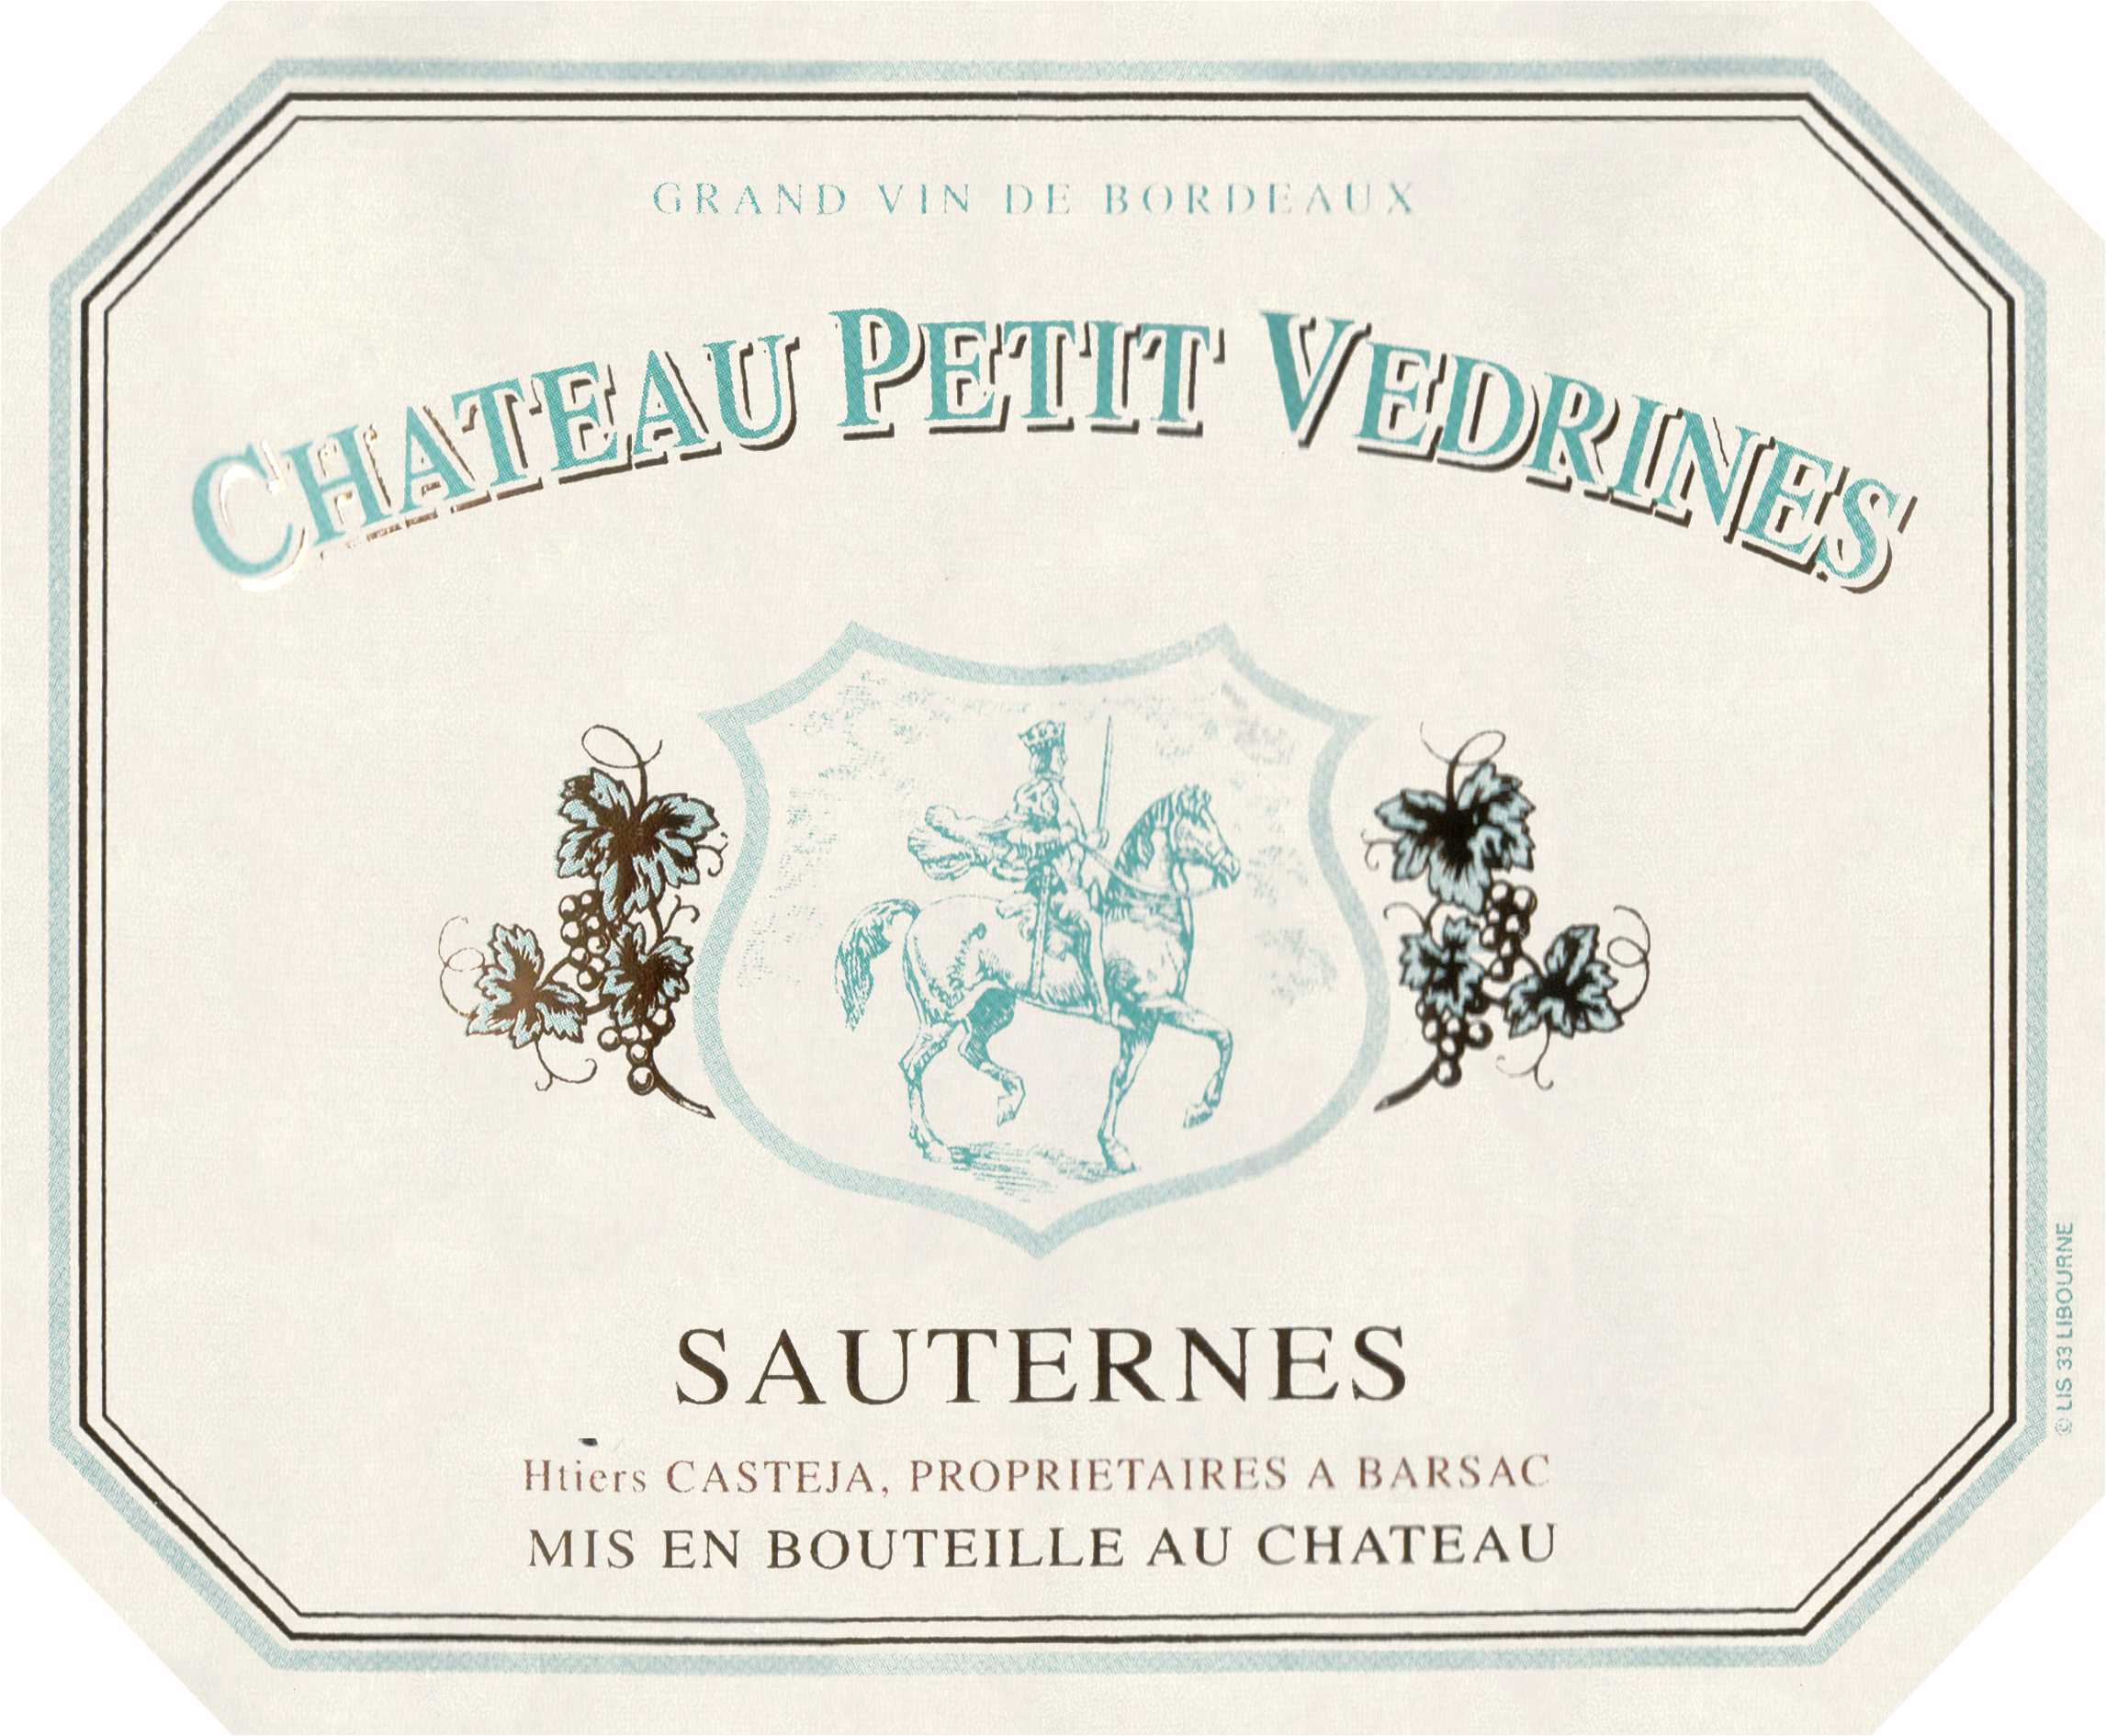 Chateau Petit Vedrines 2016